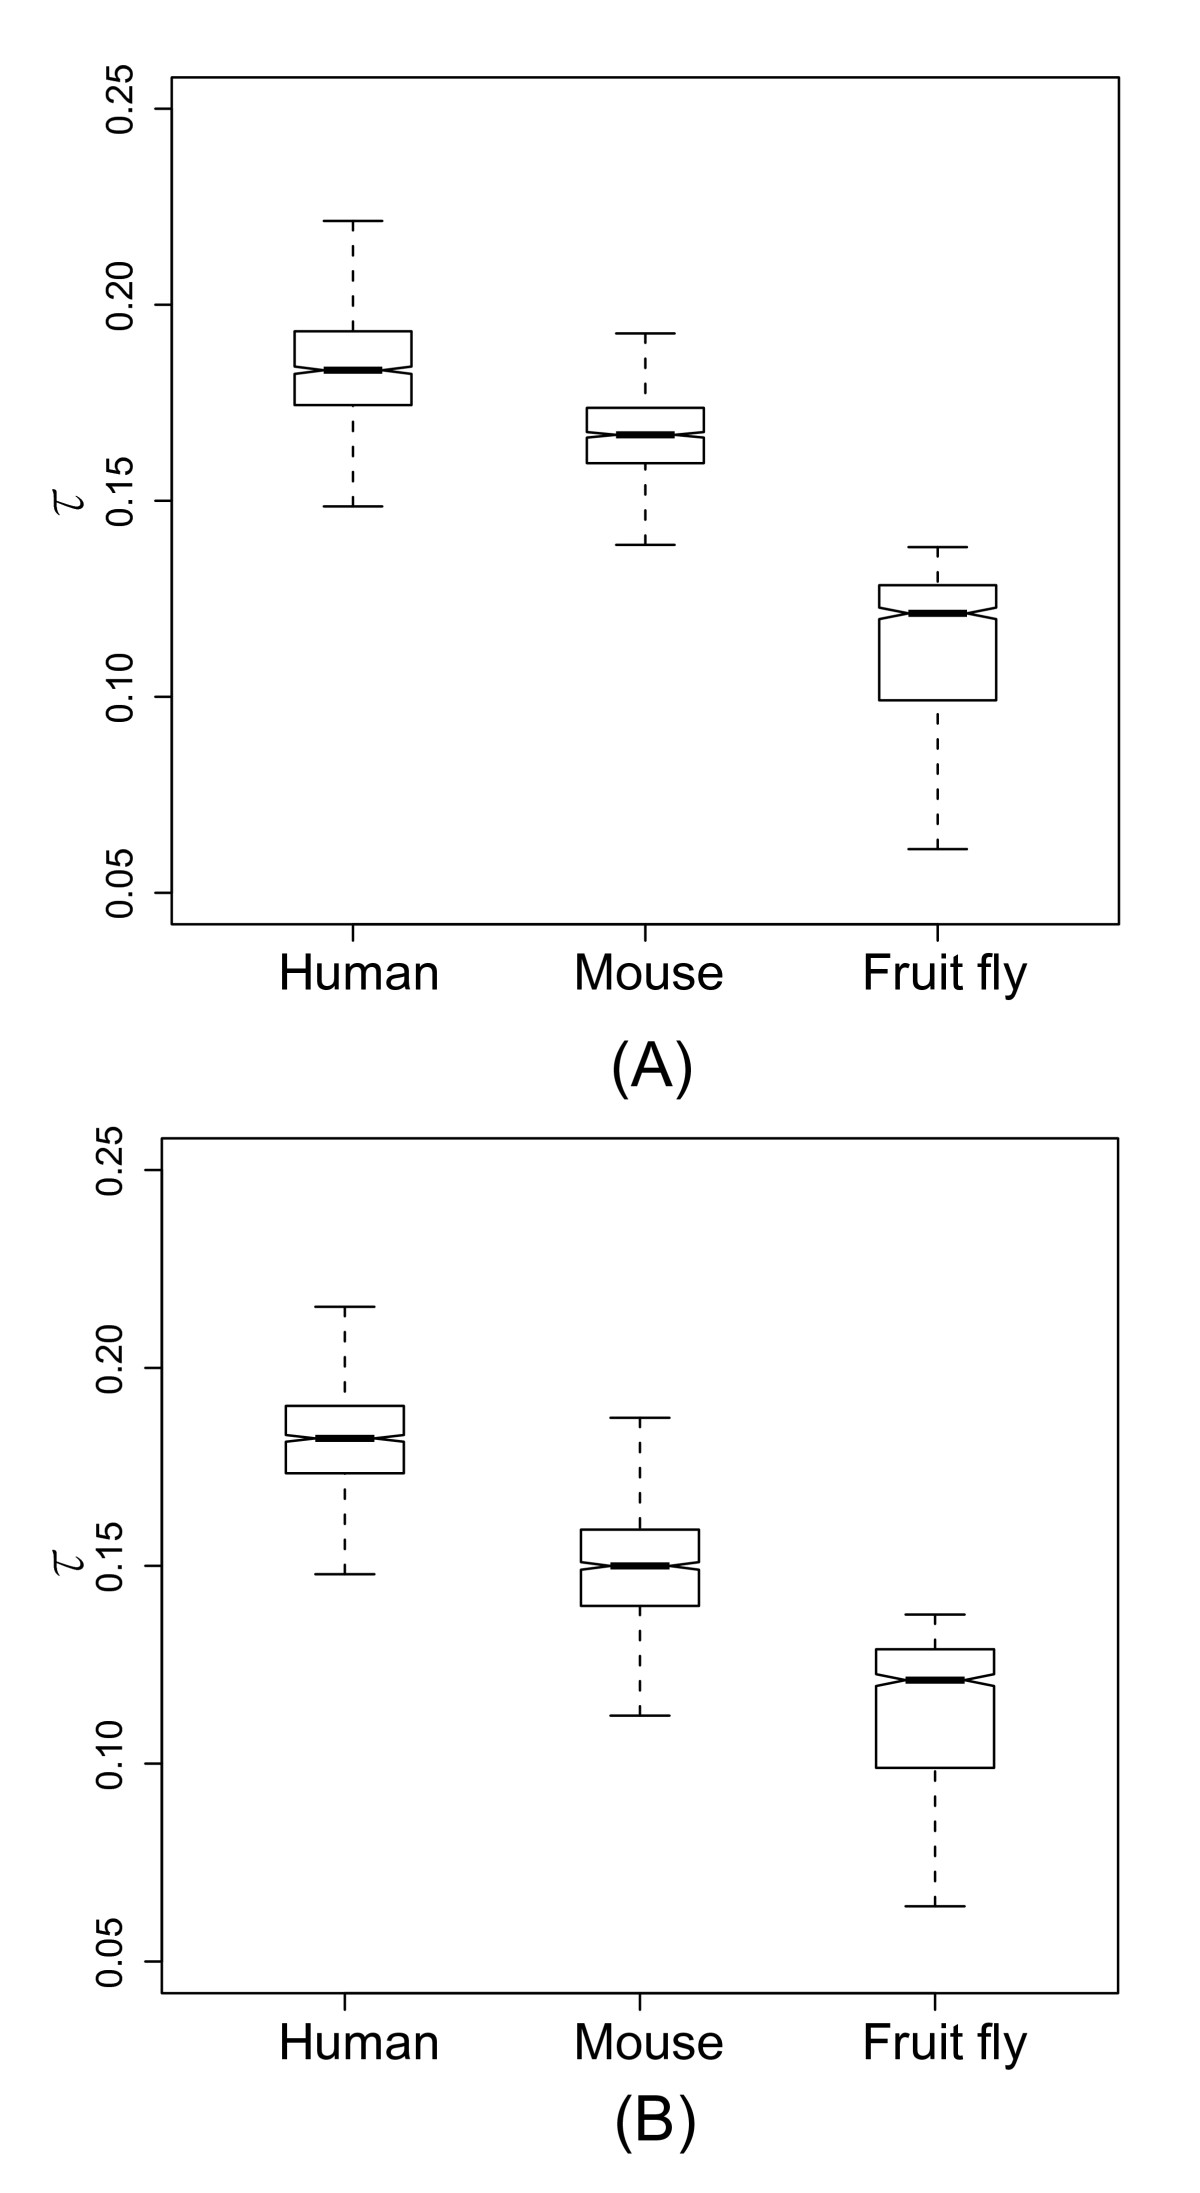 https://static-content.springer.com/image/art%3A10.1186%2F1756-0500-4-312/MediaObjects/13104_2011_Article_1063_Fig5_HTML.jpg